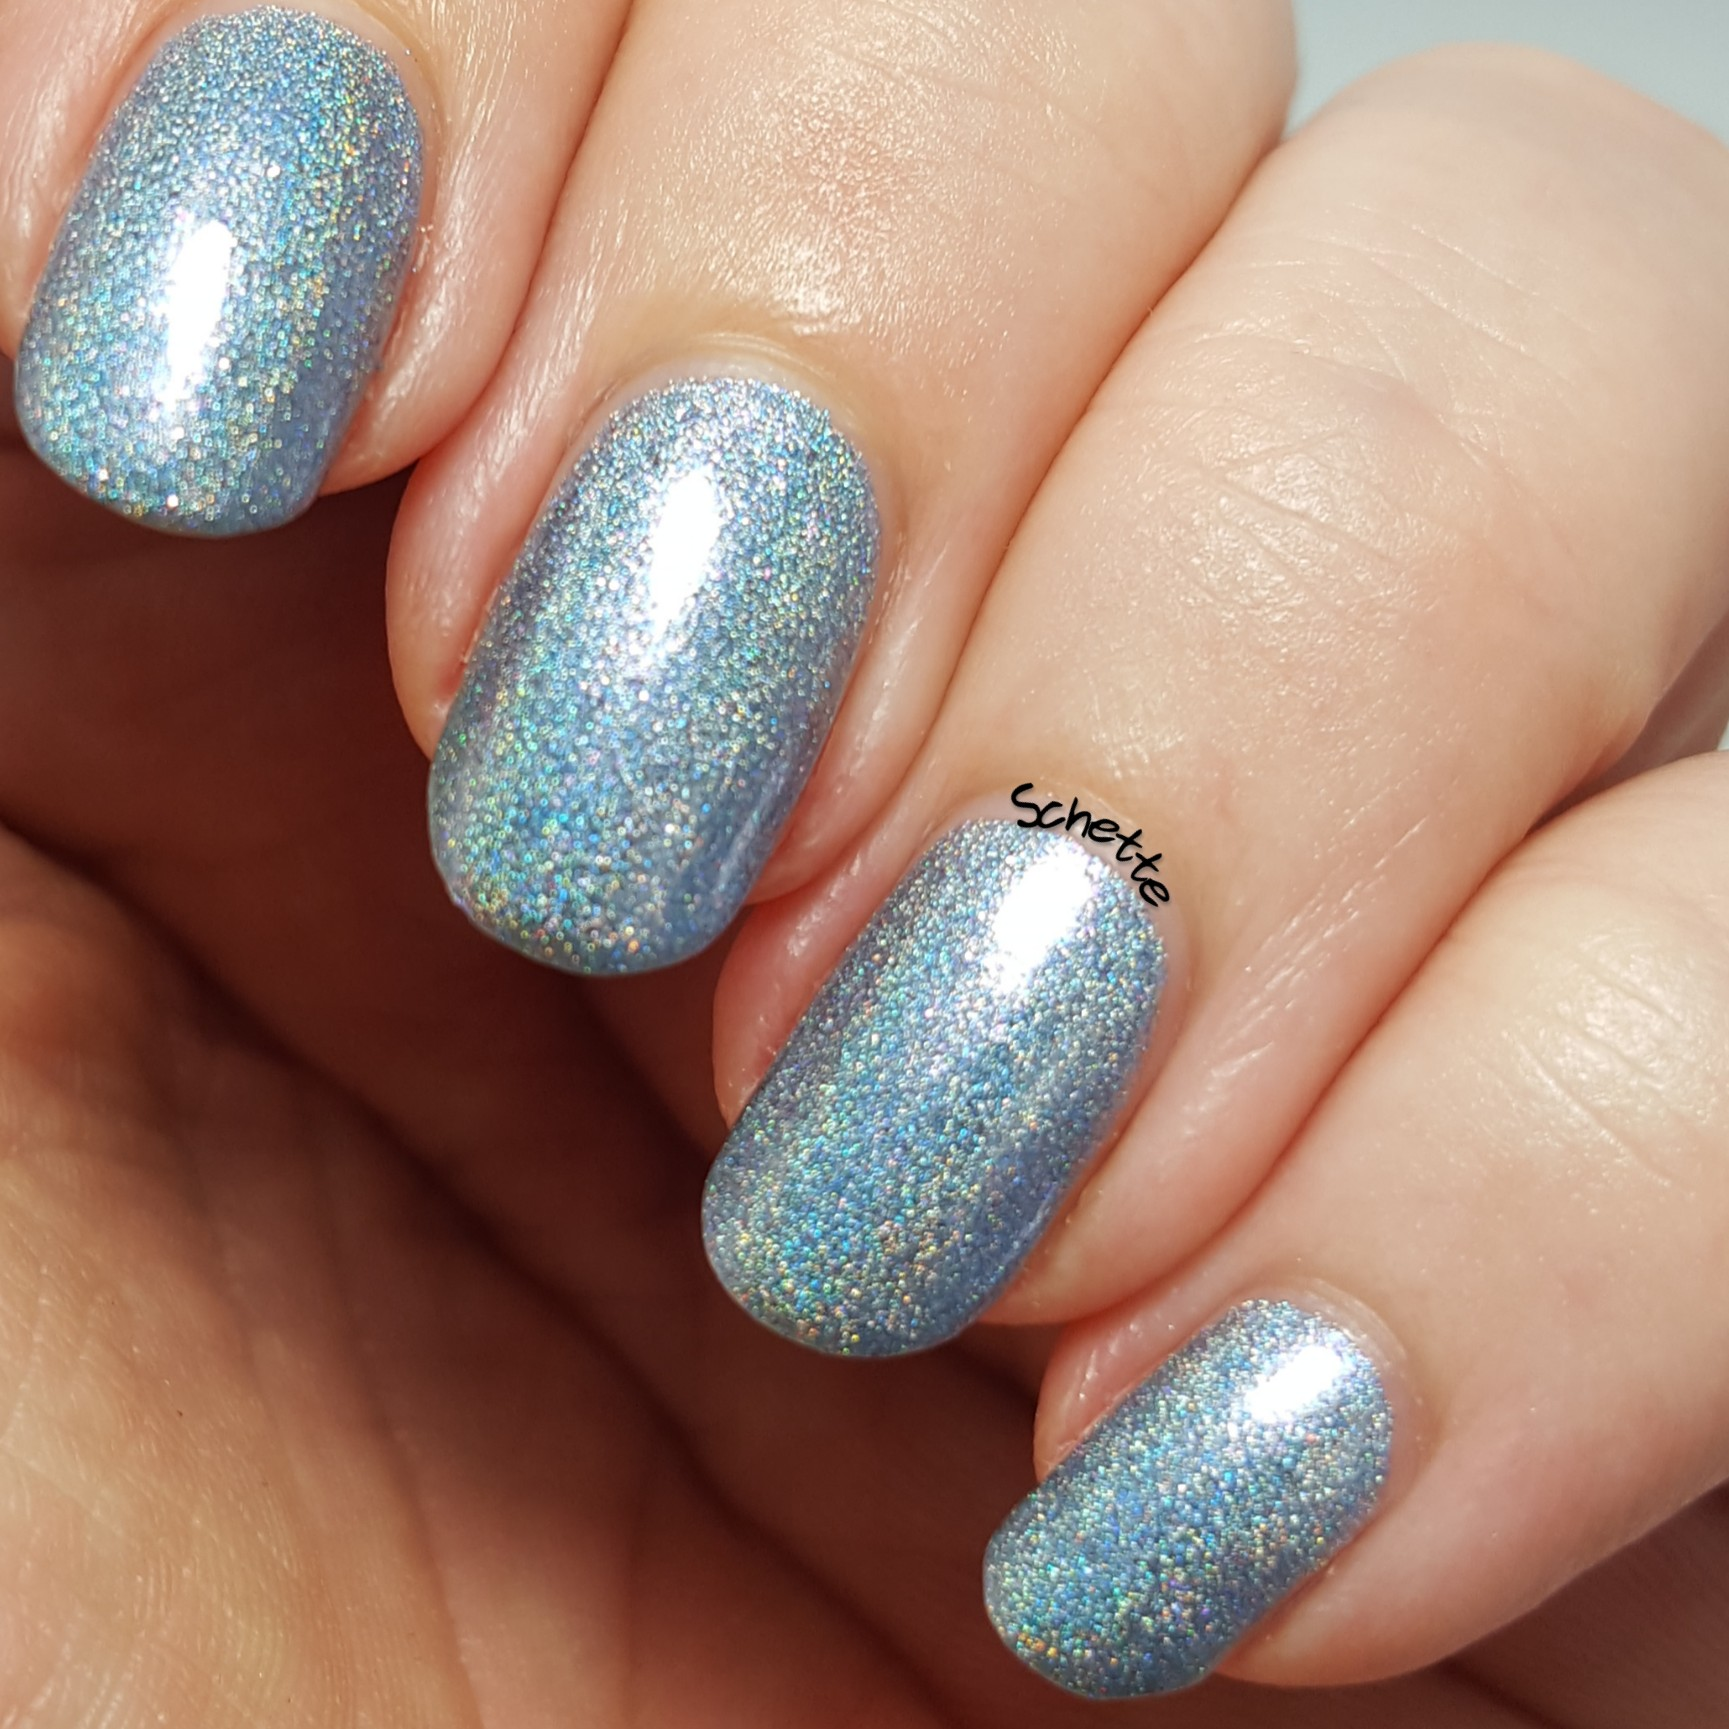 Girly Bits - Perry Twinkle